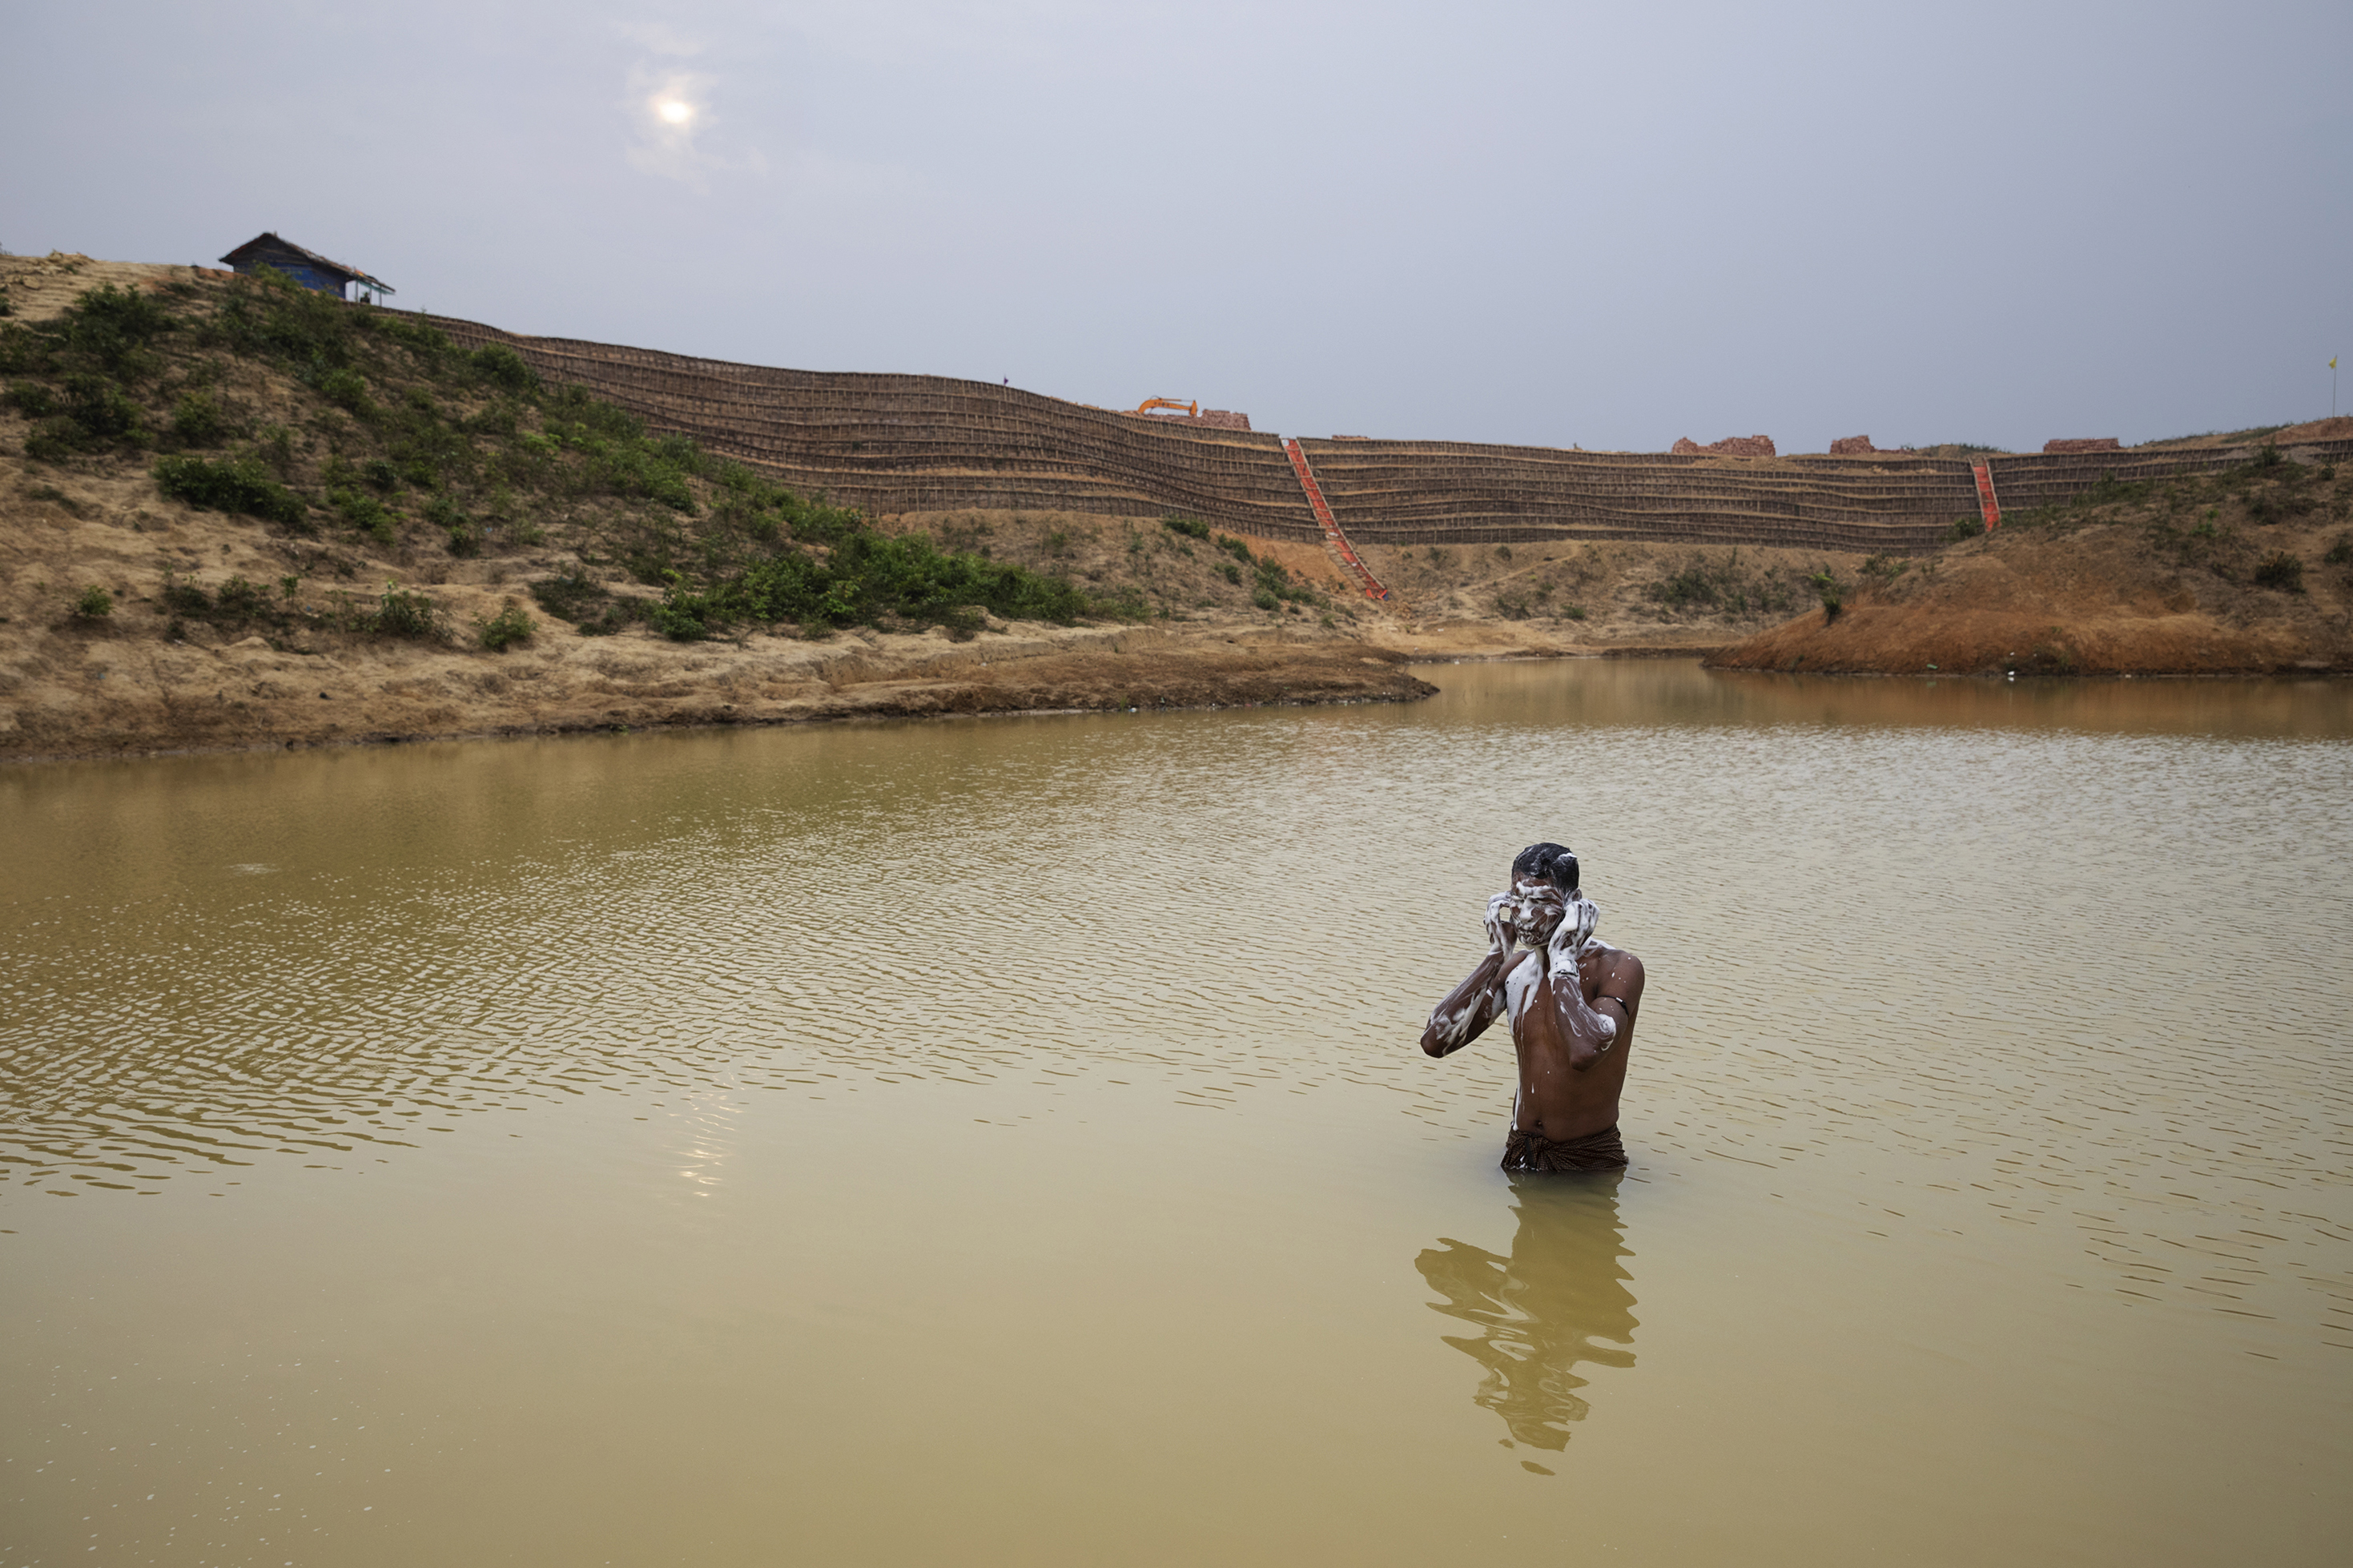 A man bathes in a man-made pond near the camp where he lives. Behind him is the construction of the Camp 20 Extension.